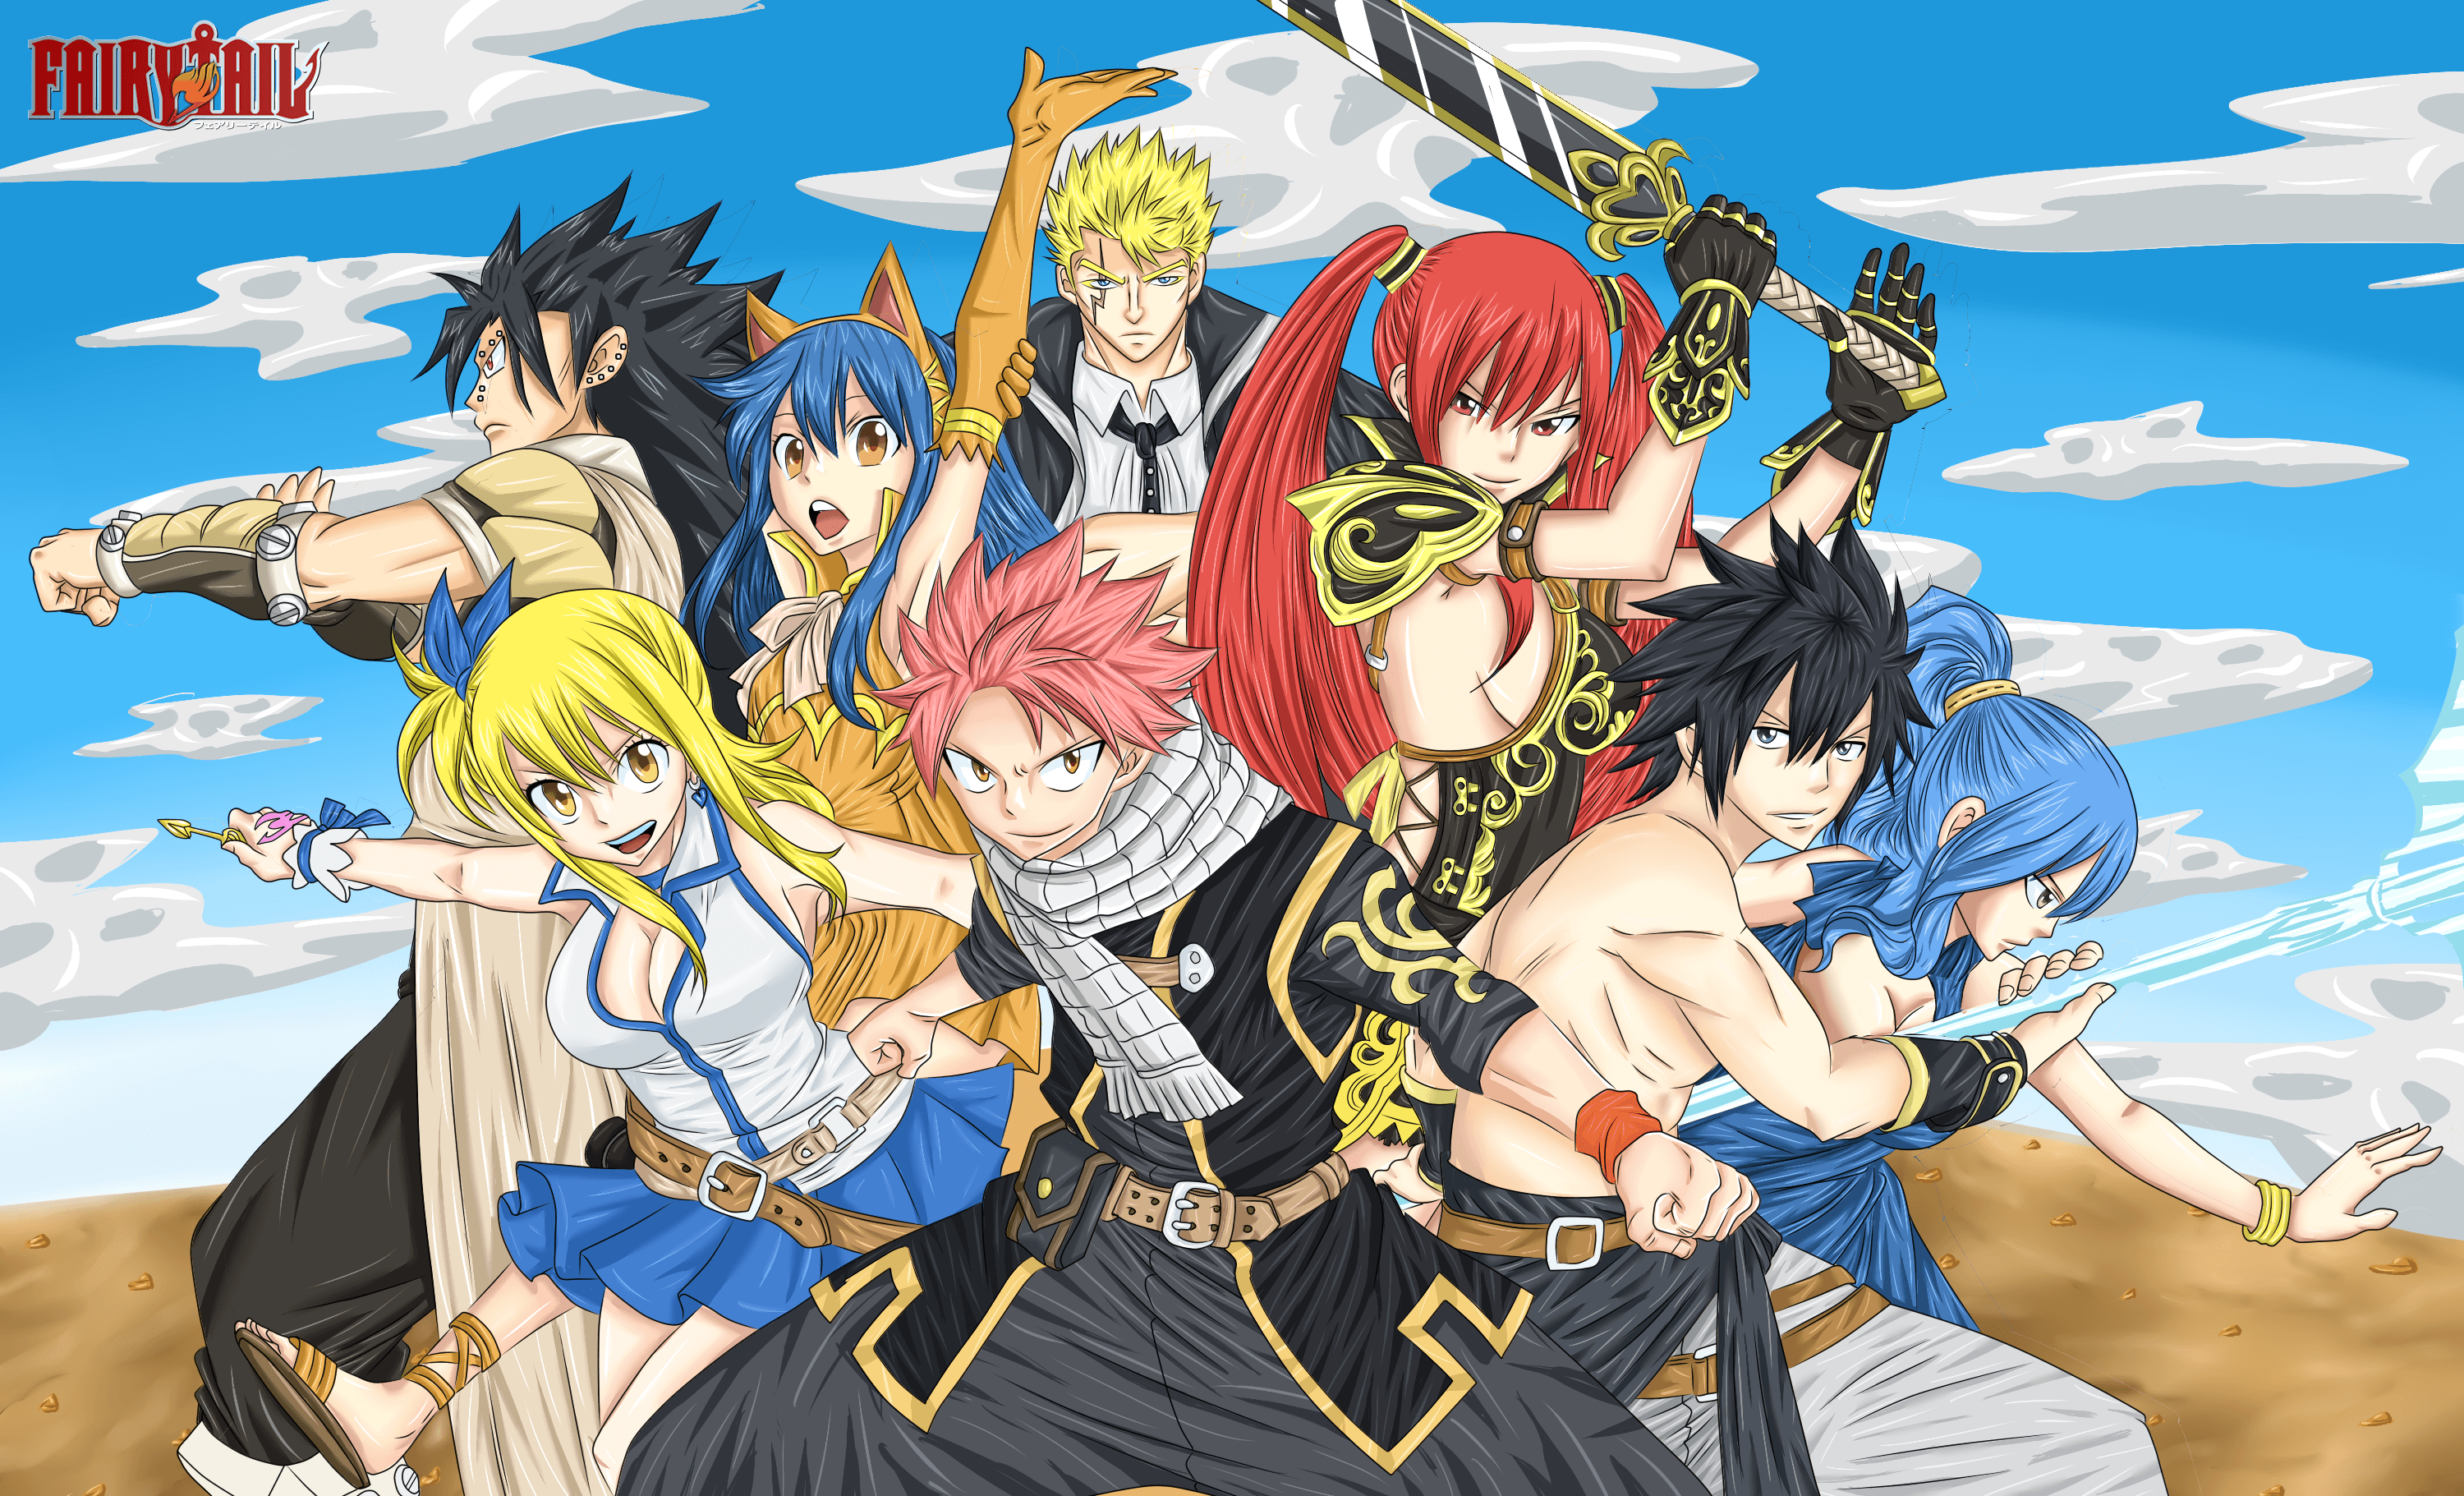 Fairy Tail Anime Wallpapers Top Free Fairy Tail Anime Backgrounds Wallpaperaccess